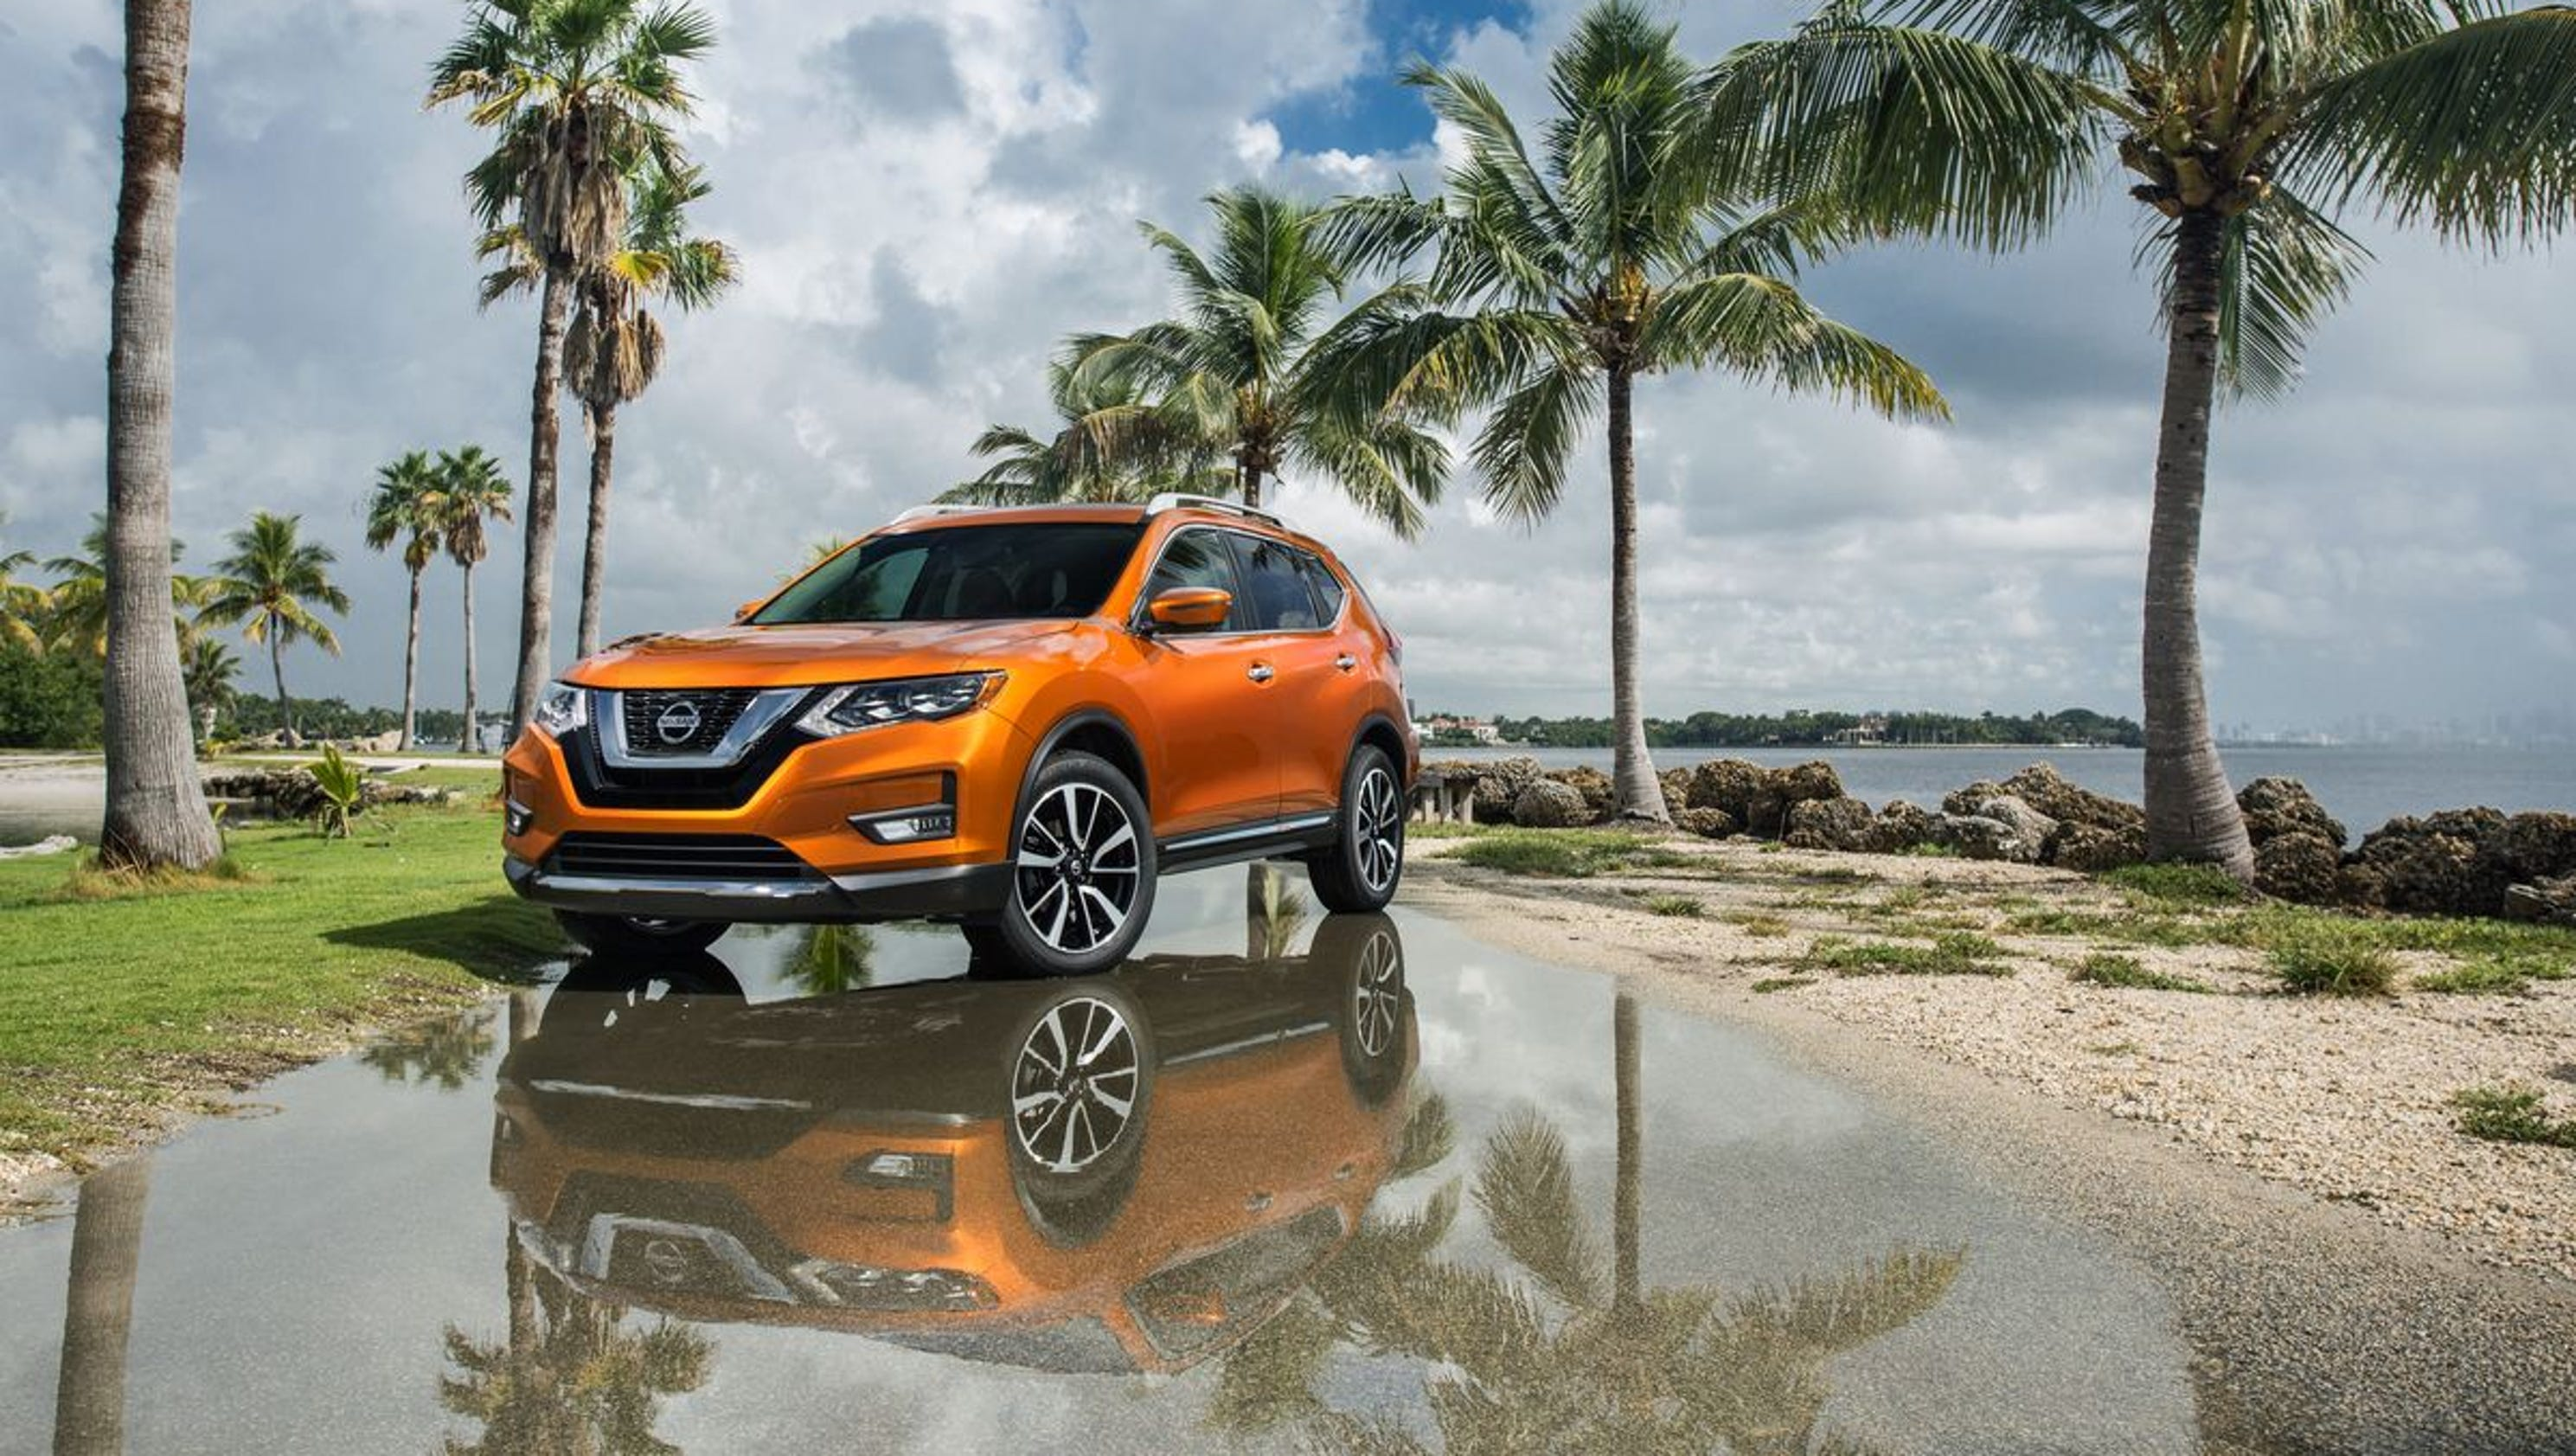 motor canada suv new murano nissan models angular reviews cars sv front used en research trend